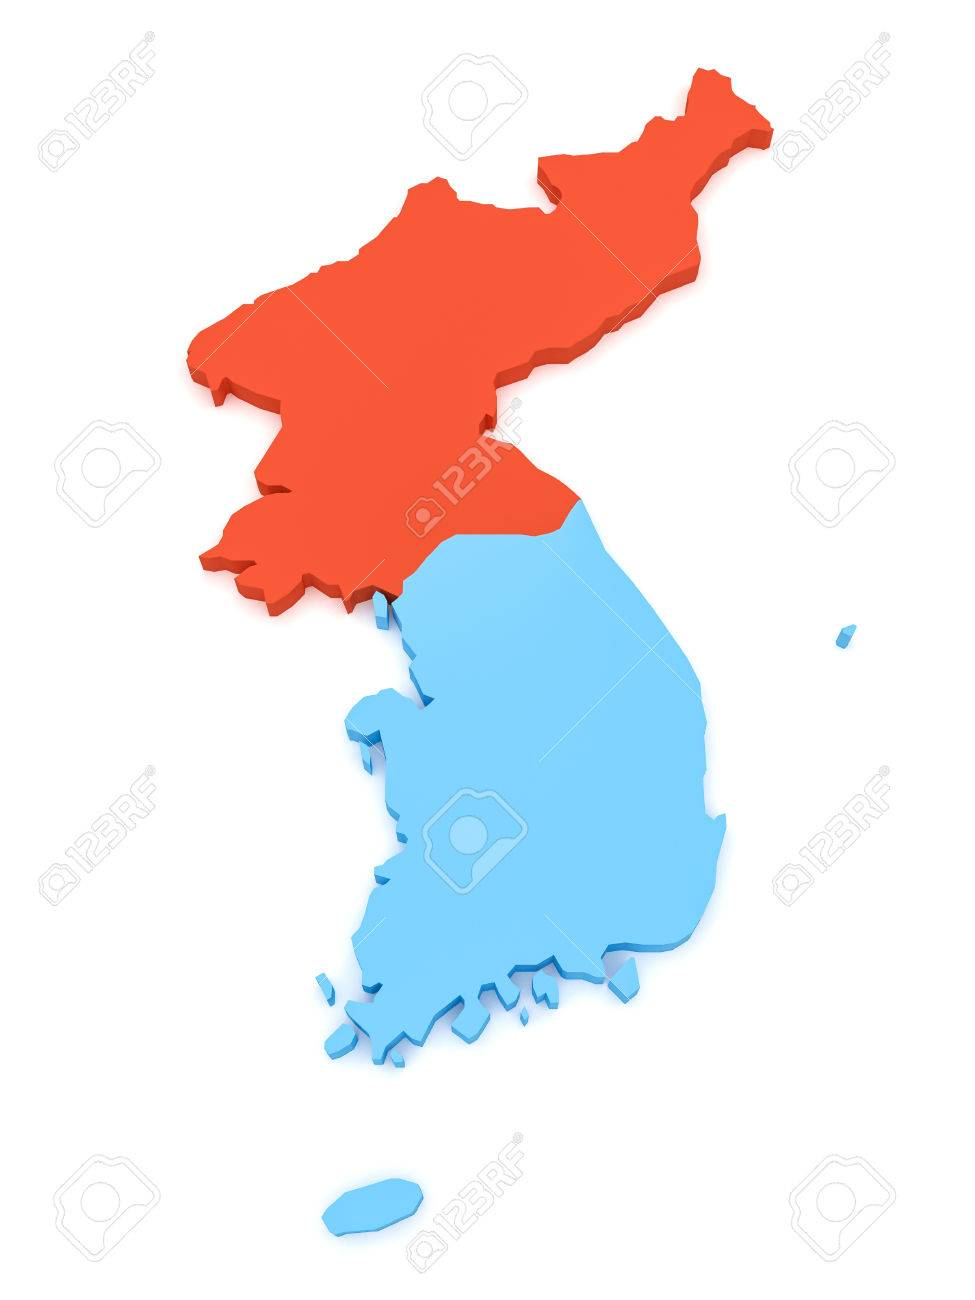 3d Illustration Of North Korea And South Korea Map Isolated On